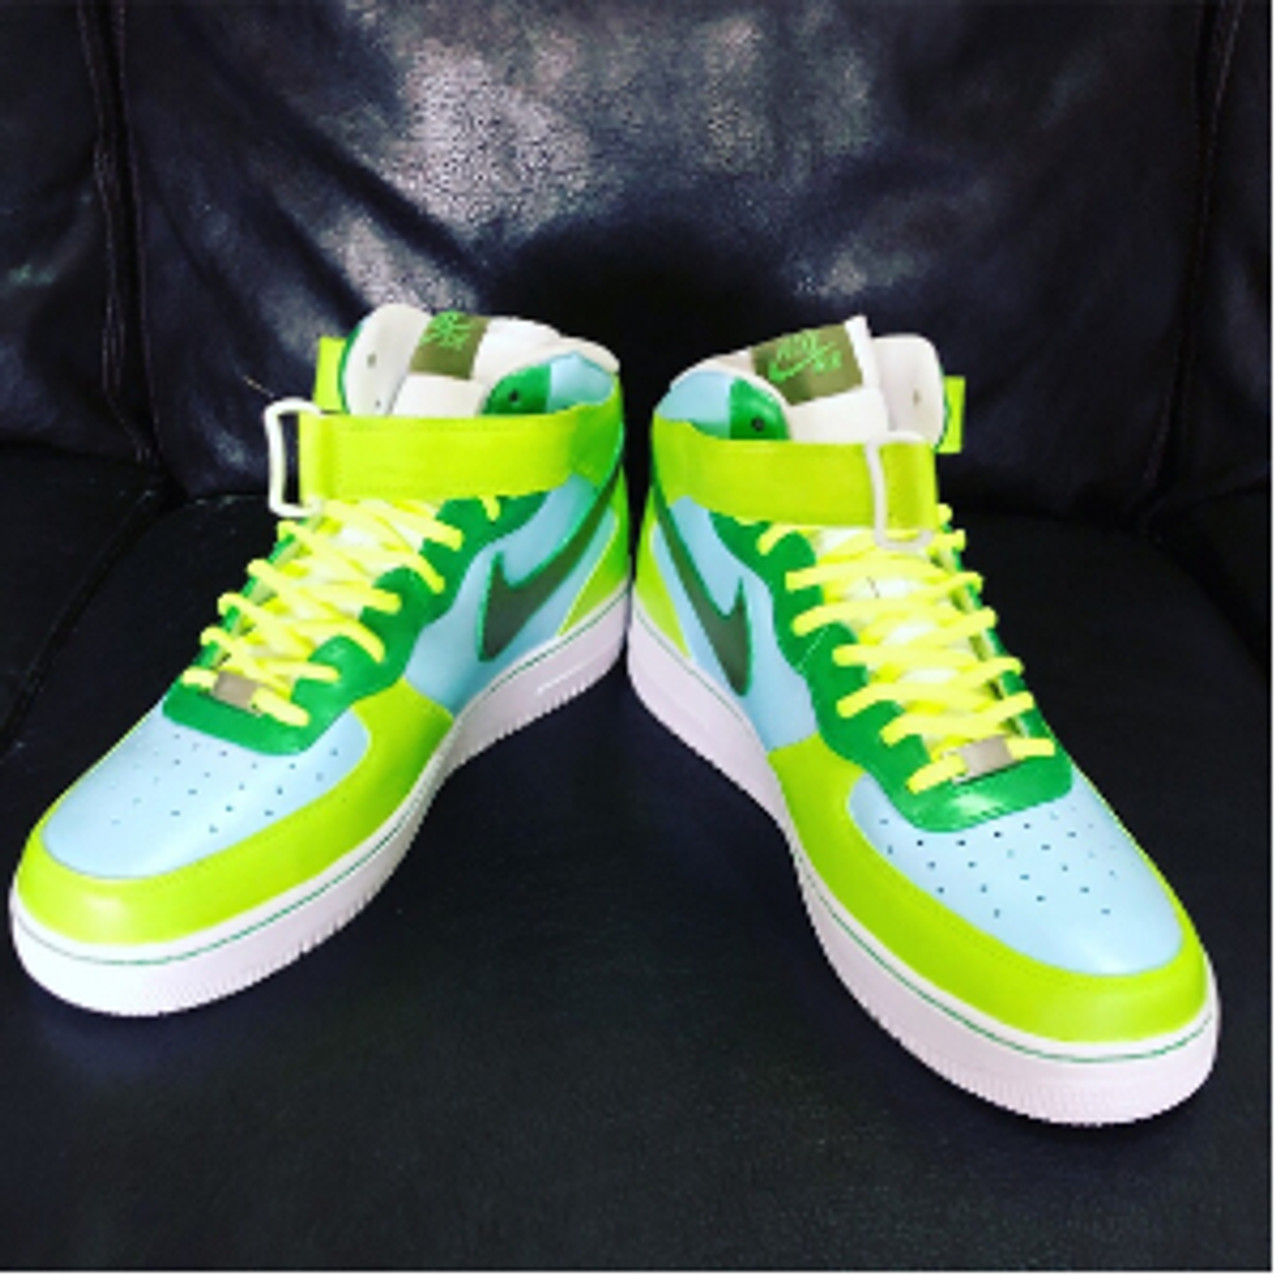 Custom Nike Neon Sneakers At Hiphopcloset